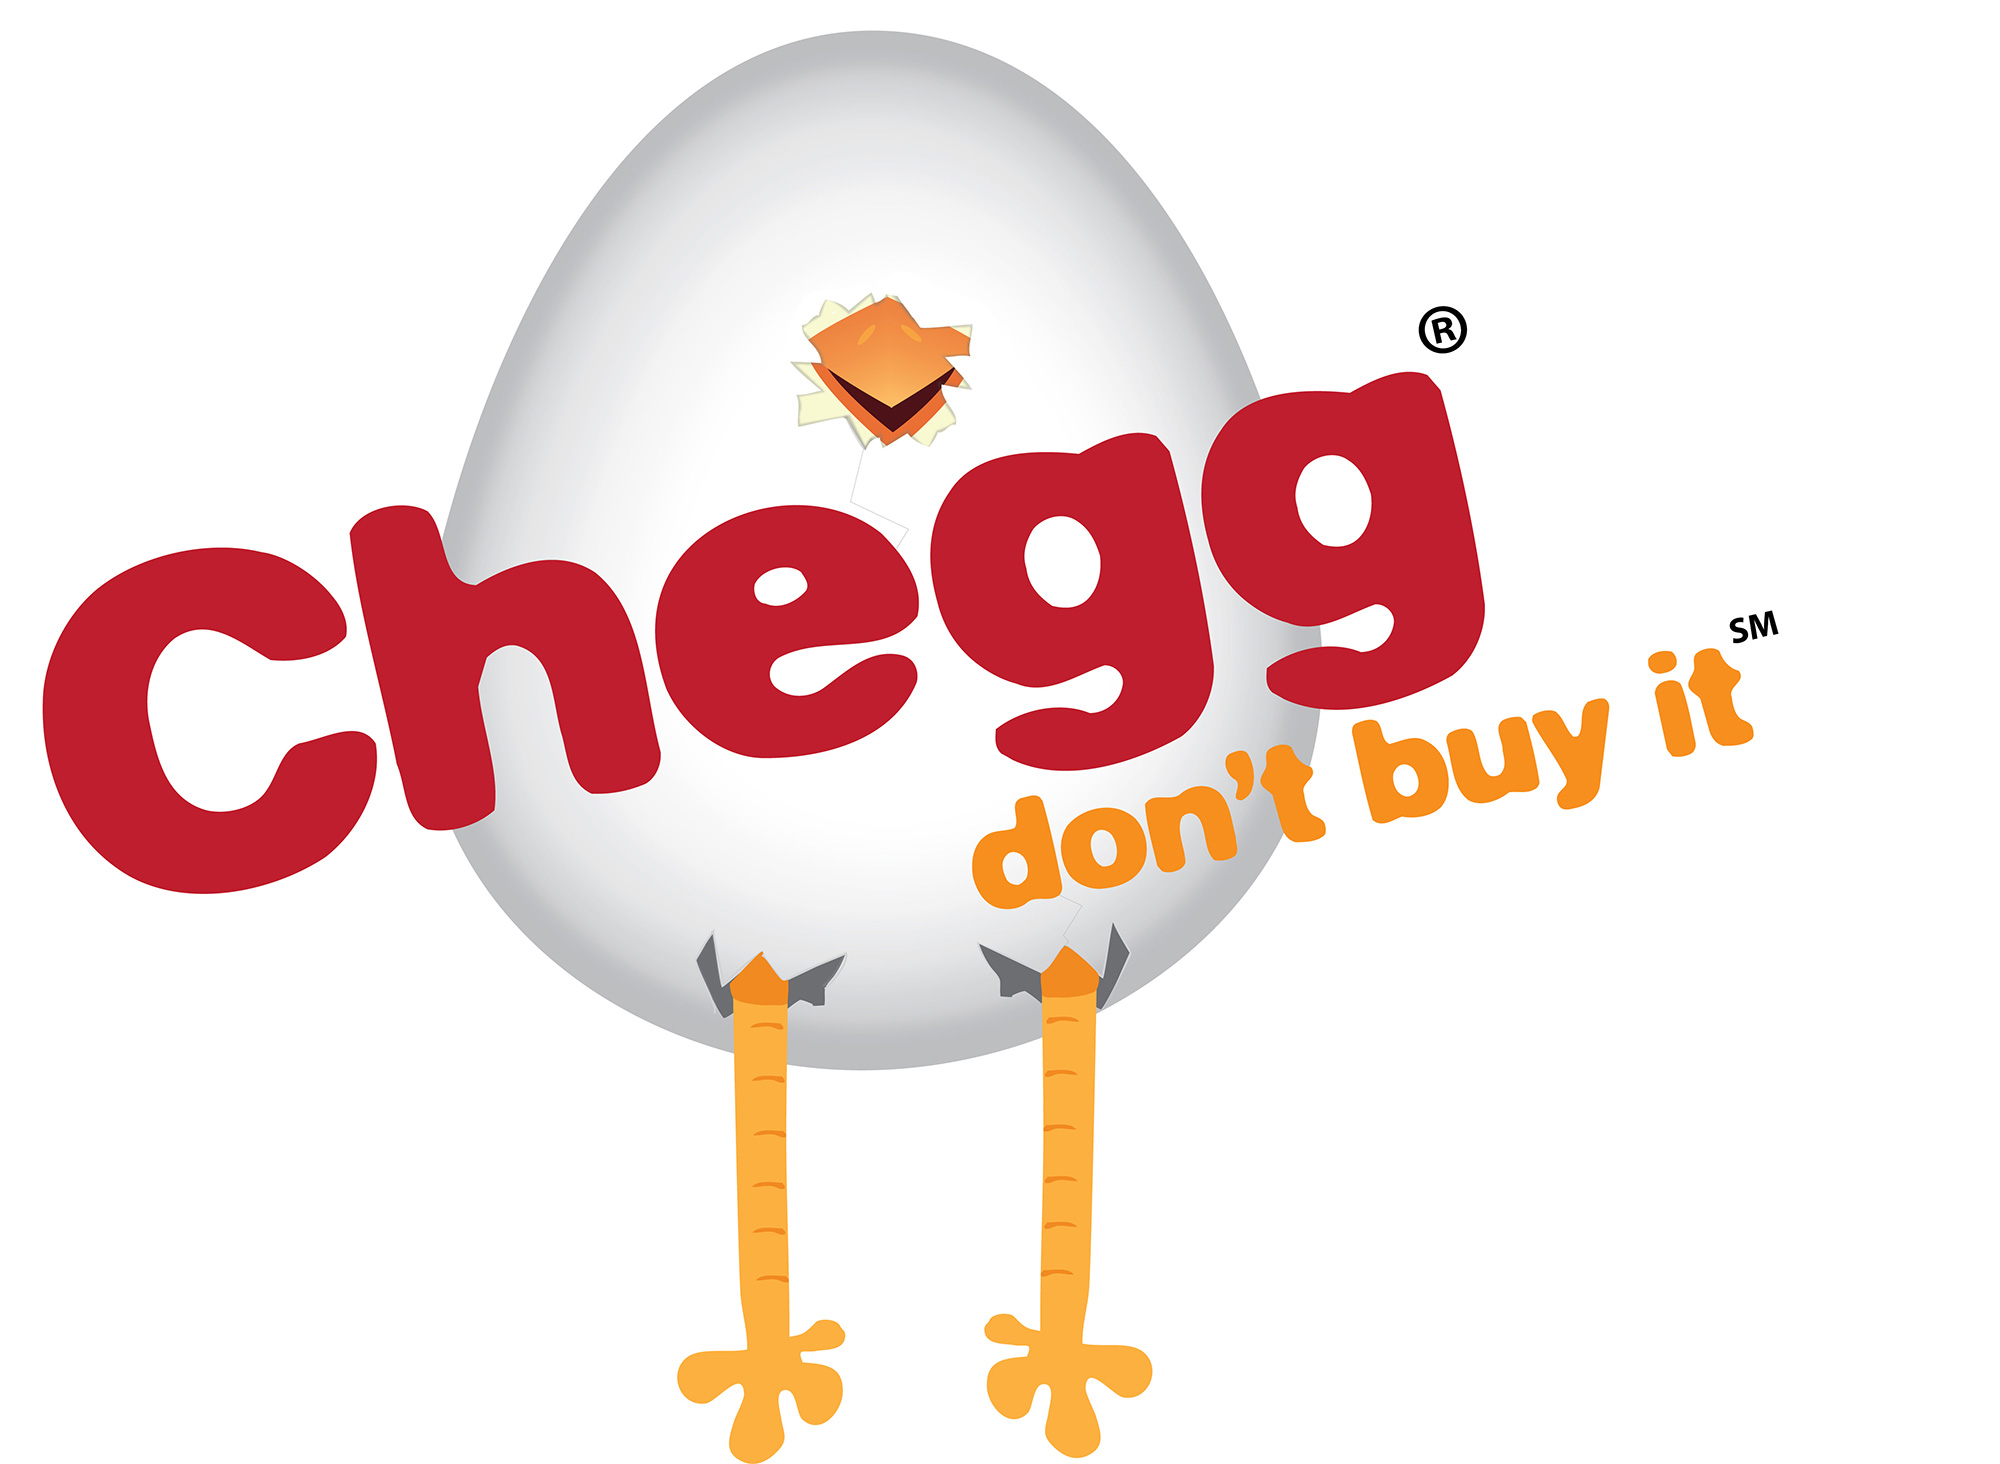 Chegg, Inc. is an American education technology company based in Santa Clara, California, that used to specialize in online textbook rentals (both in physical and digital formats), and has moved into homework help, online tutoring, scholarships and internship matching.